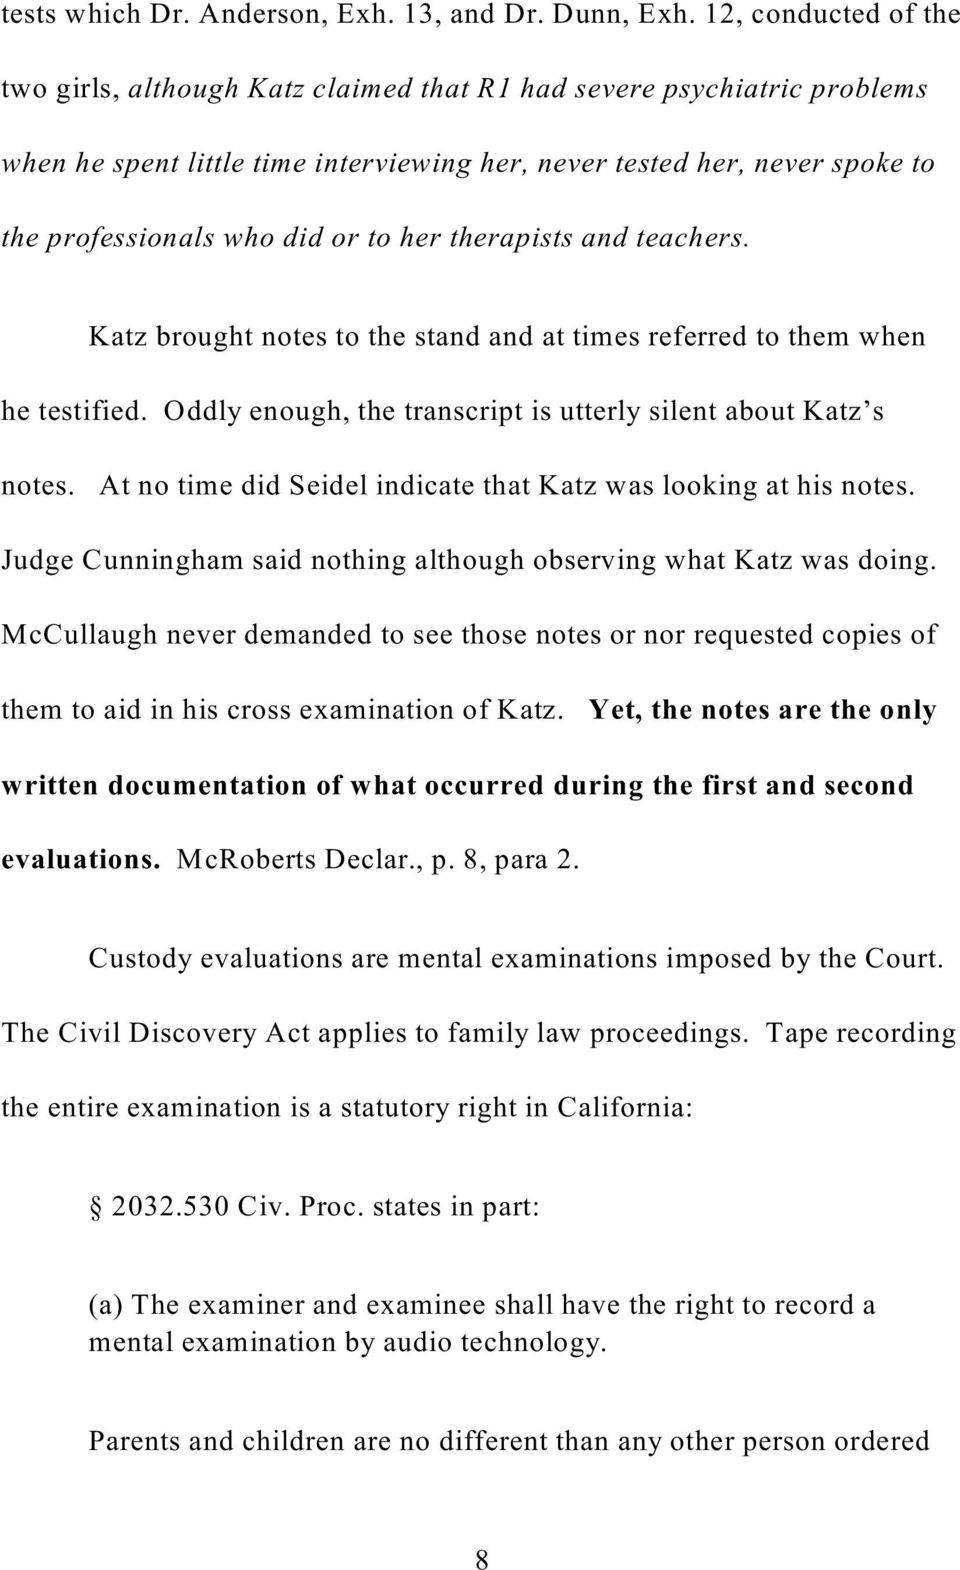 to her therapists and teachers. Katz brought notes to the stand and at times referred to them when he testified. Oddly enough, the transcript is utterly silent about Katz s notes.